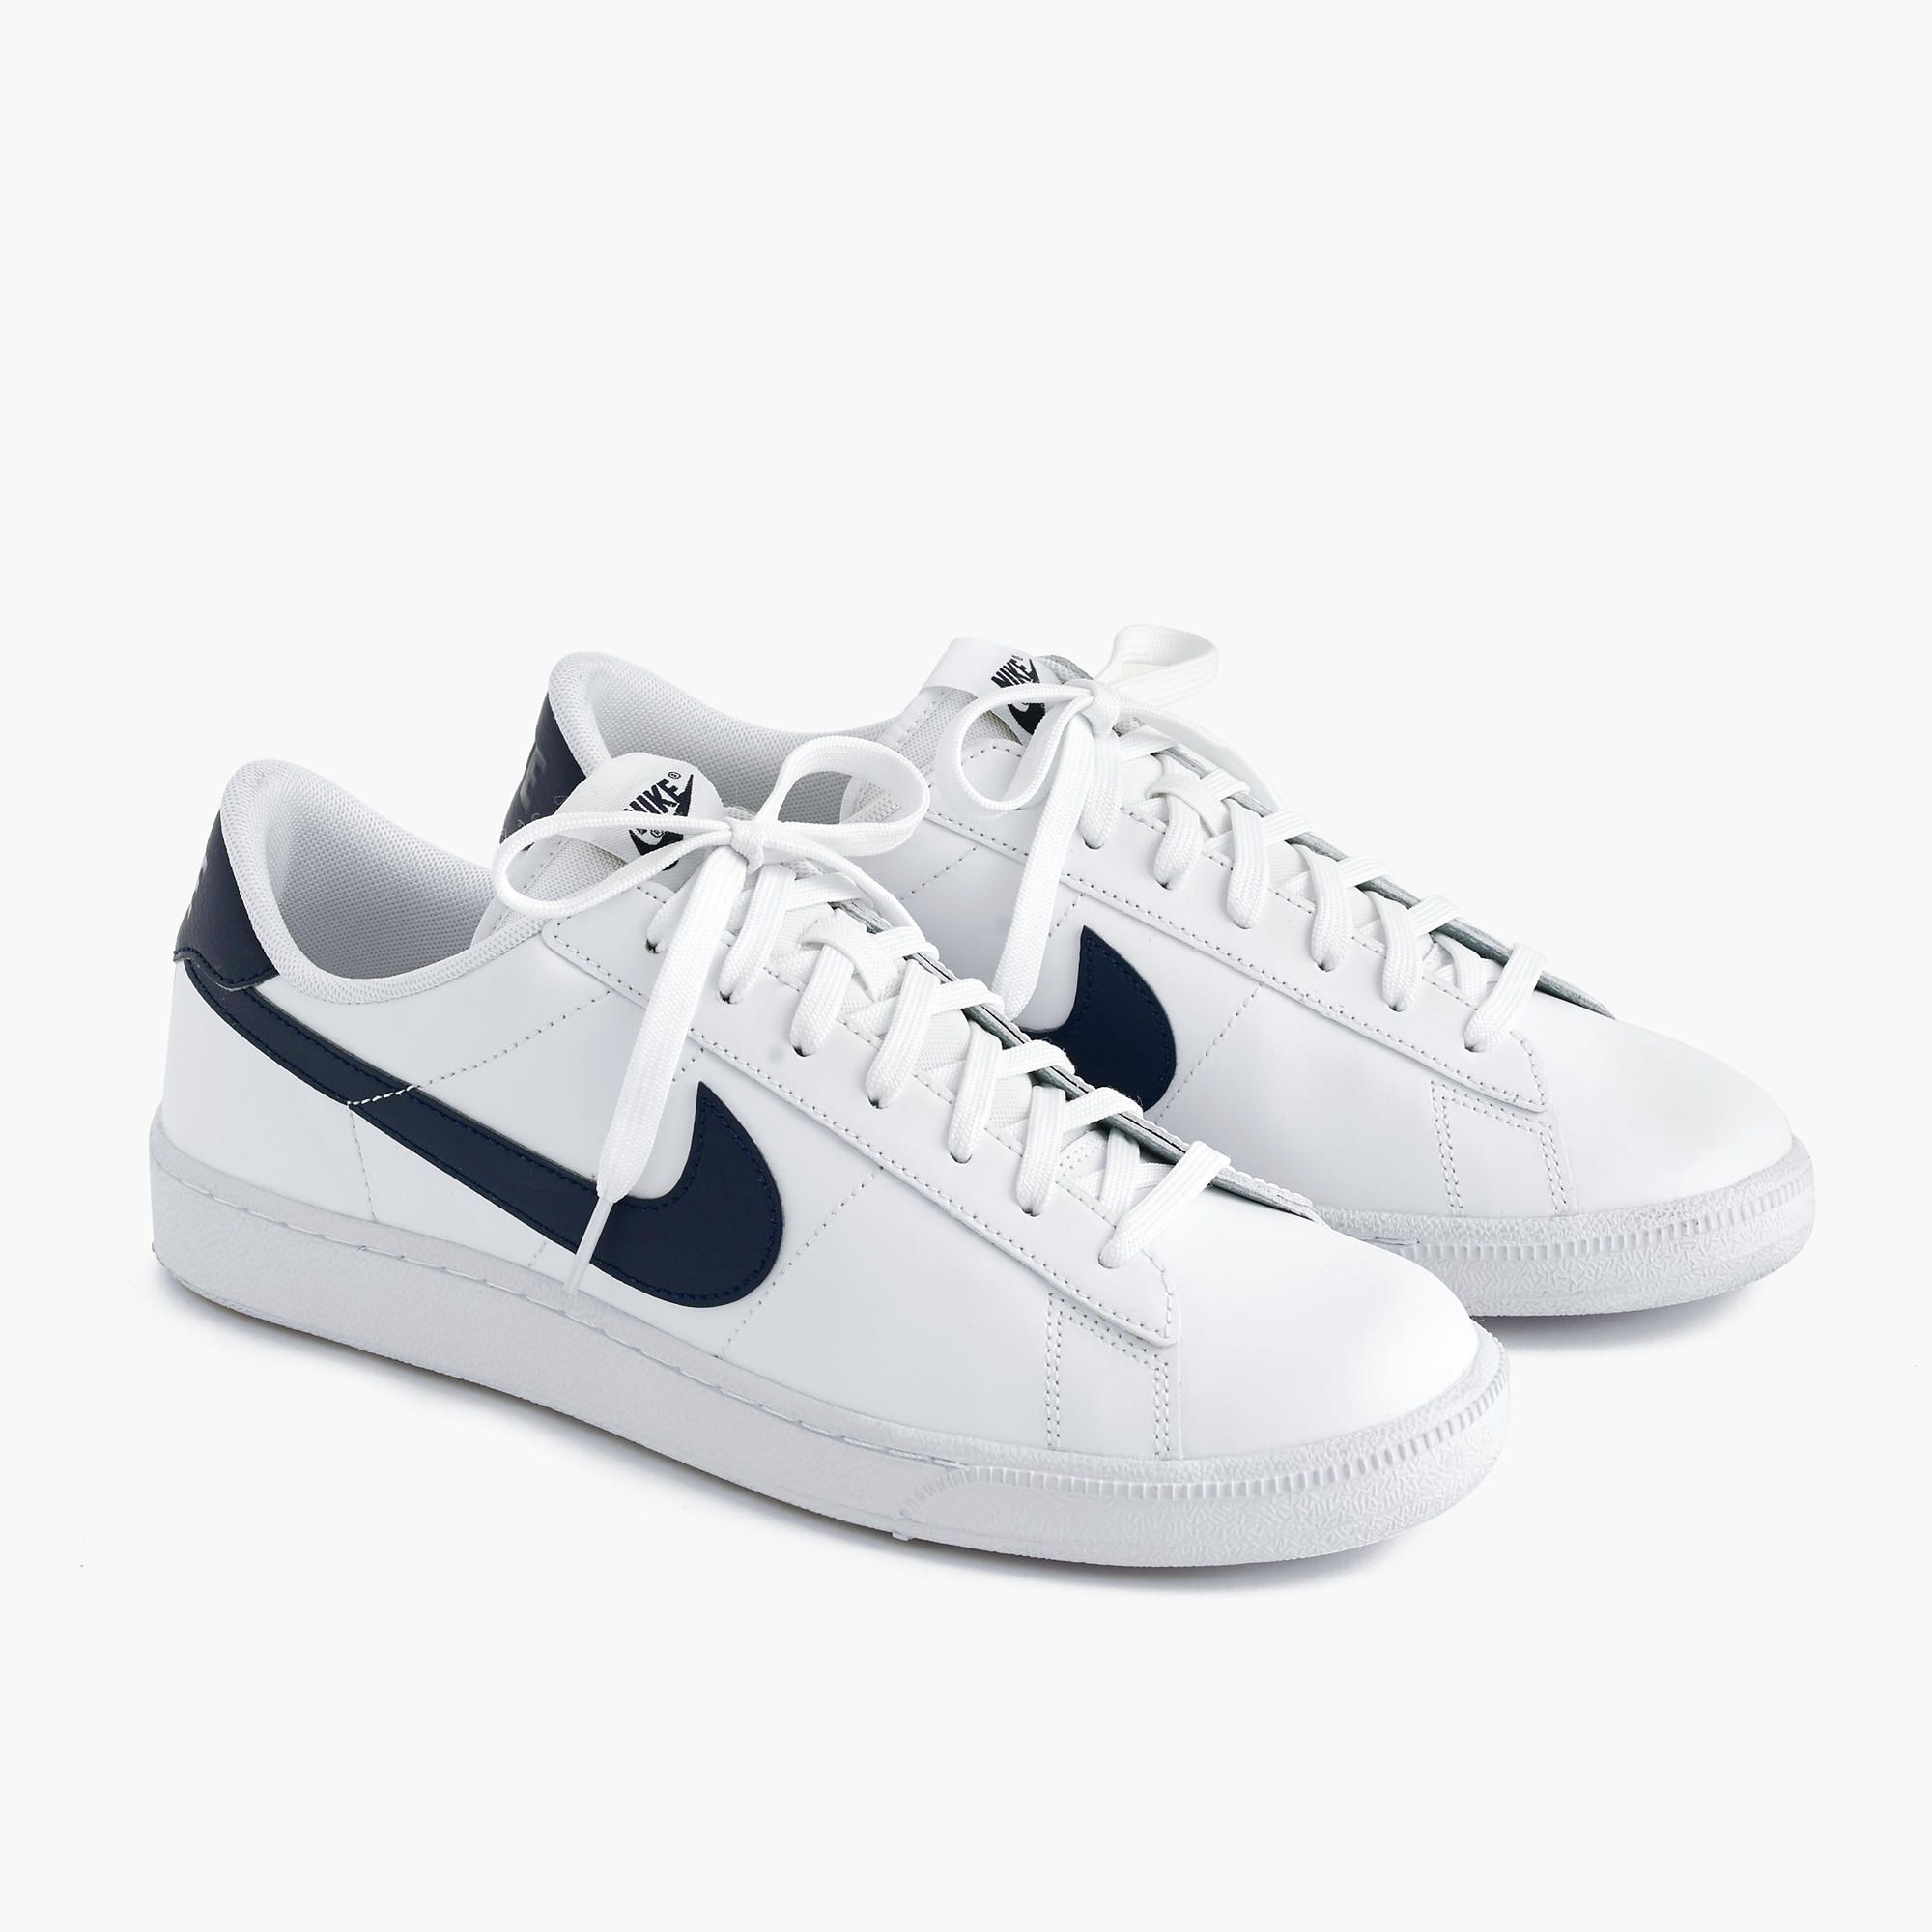 Nike Tennis Classic Sneakers In White : Men's Sneakers